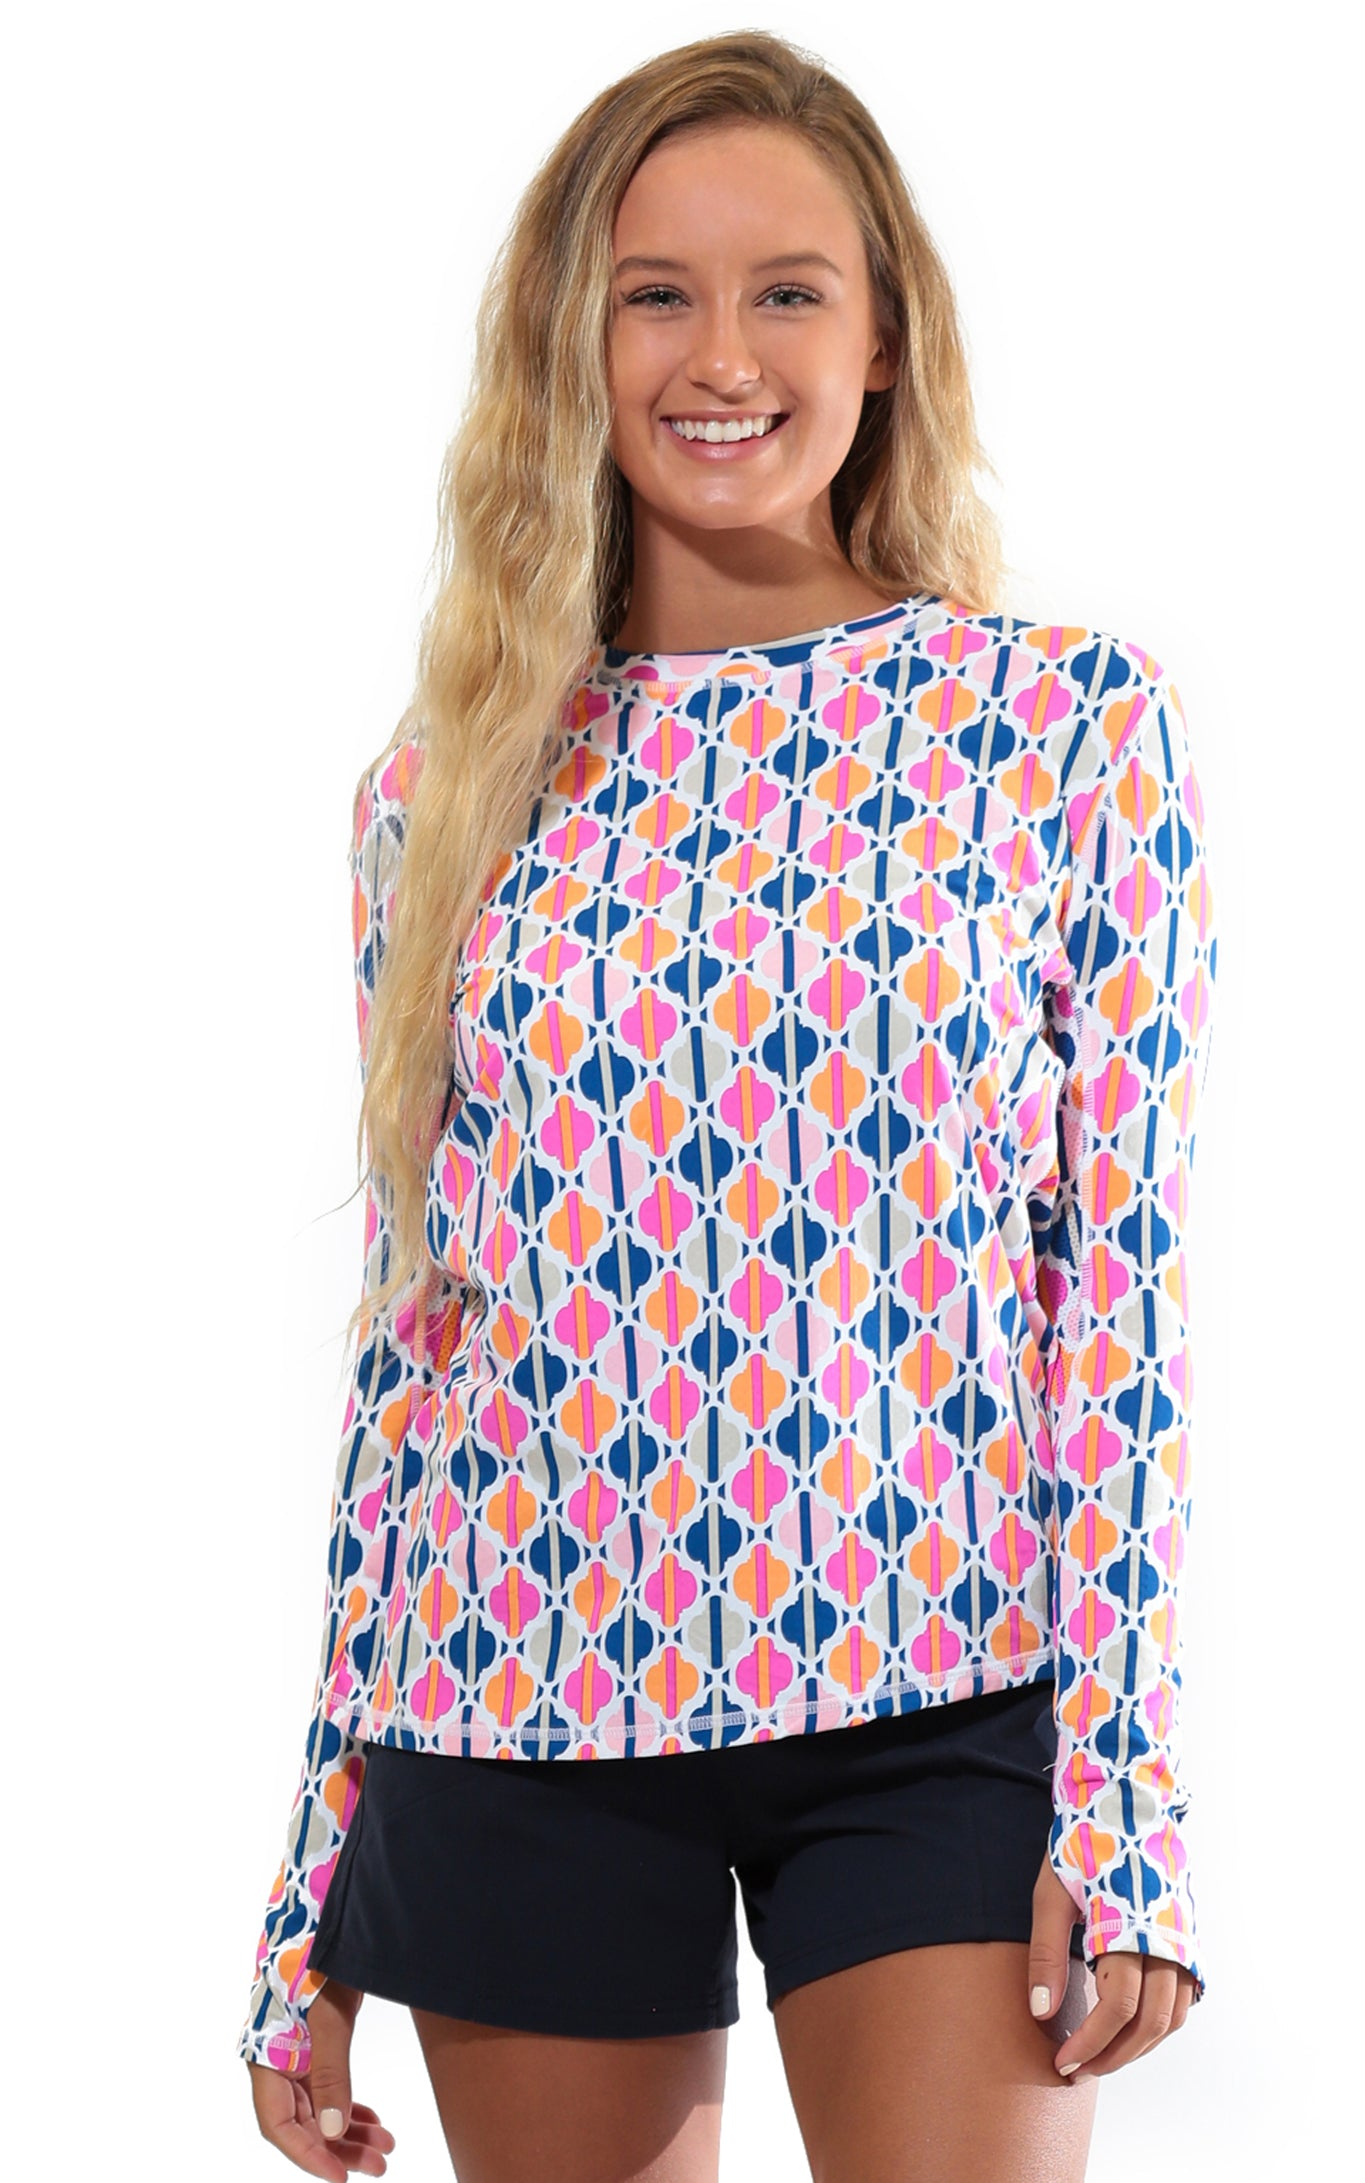 Chasing Waterfalls Pink Crew Neck Sun Protective Top